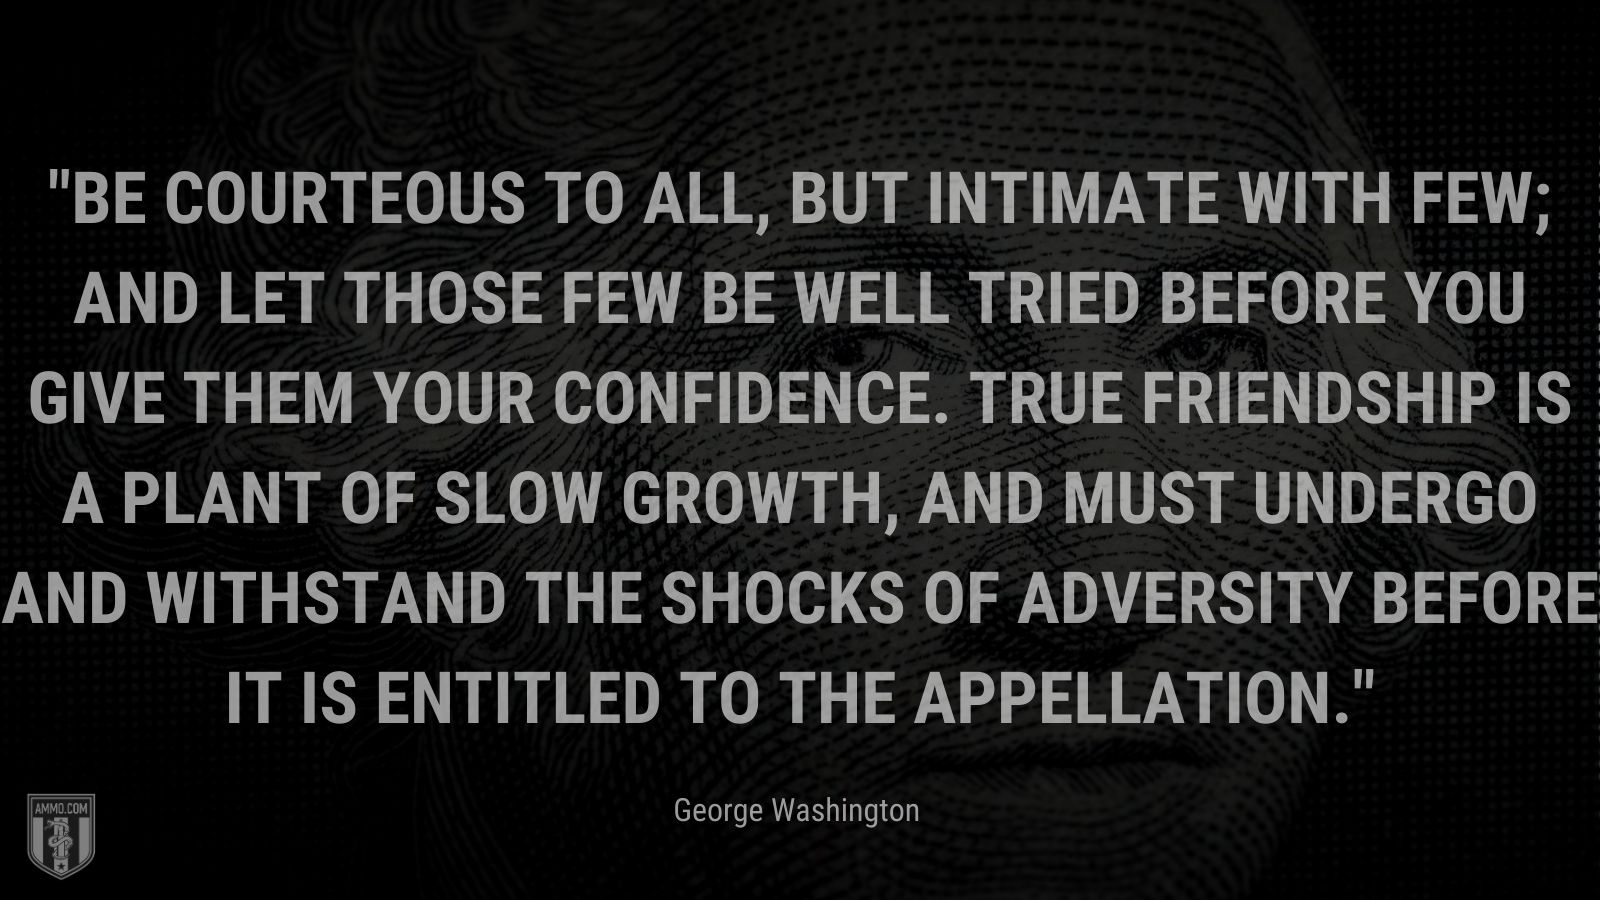 """""""Be courteous to all, but intimate with few; and let those few be well tried before you give them your confidence. True friendship is a plant of slow growth, and must undergo and withstand the shocks of adversity before it is entitled to the appellation."""" - George Washington"""